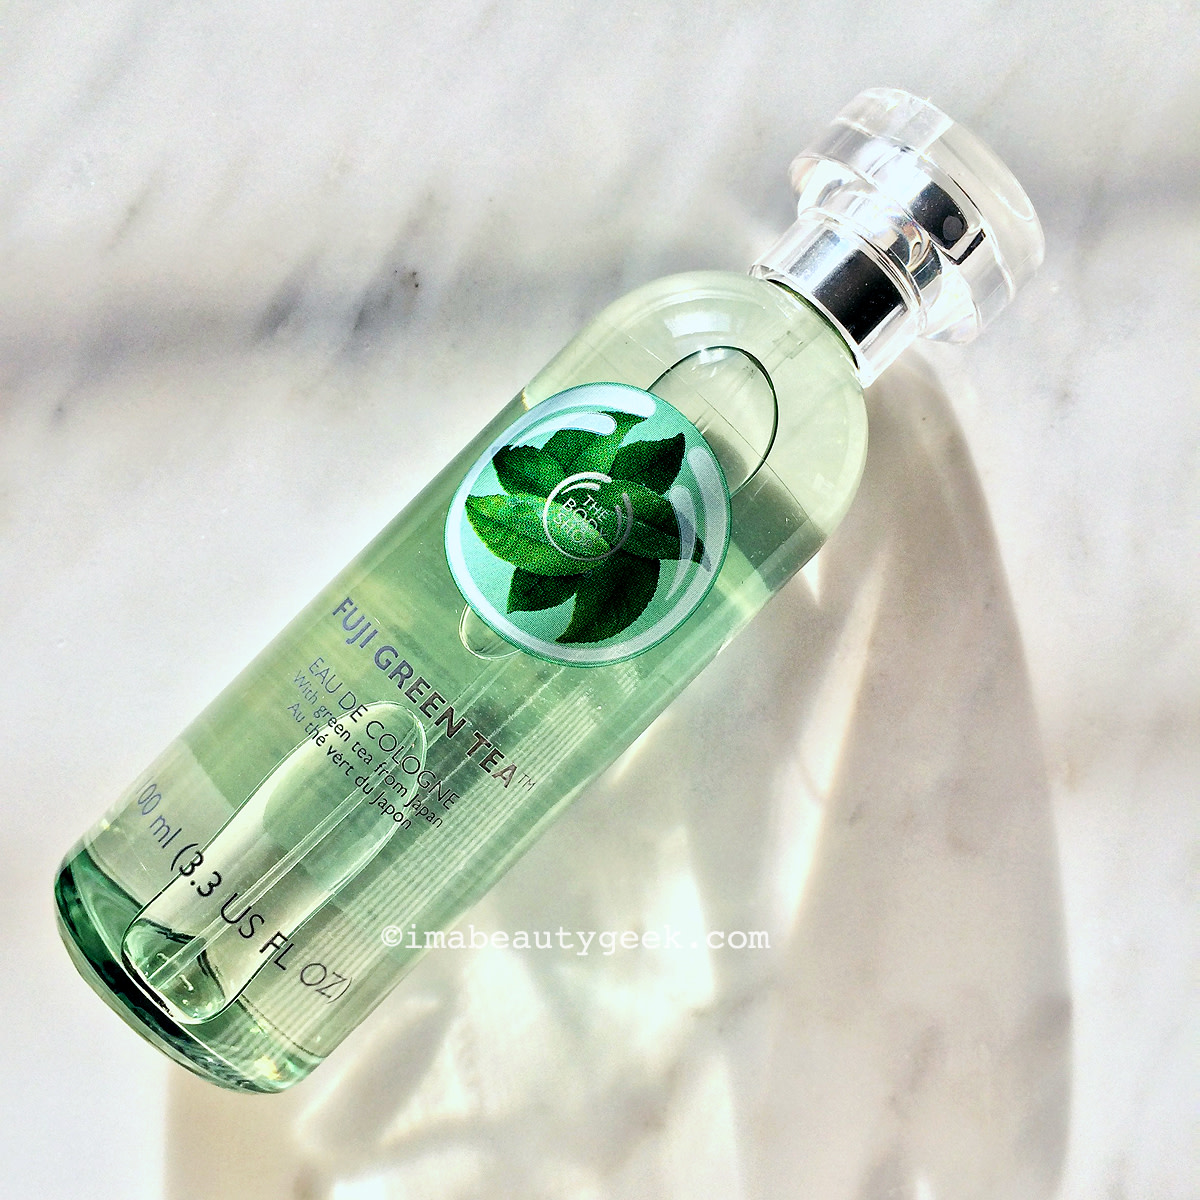 Spraycation fragrance: The Body Shop Fuji Green Tea eau de cologne